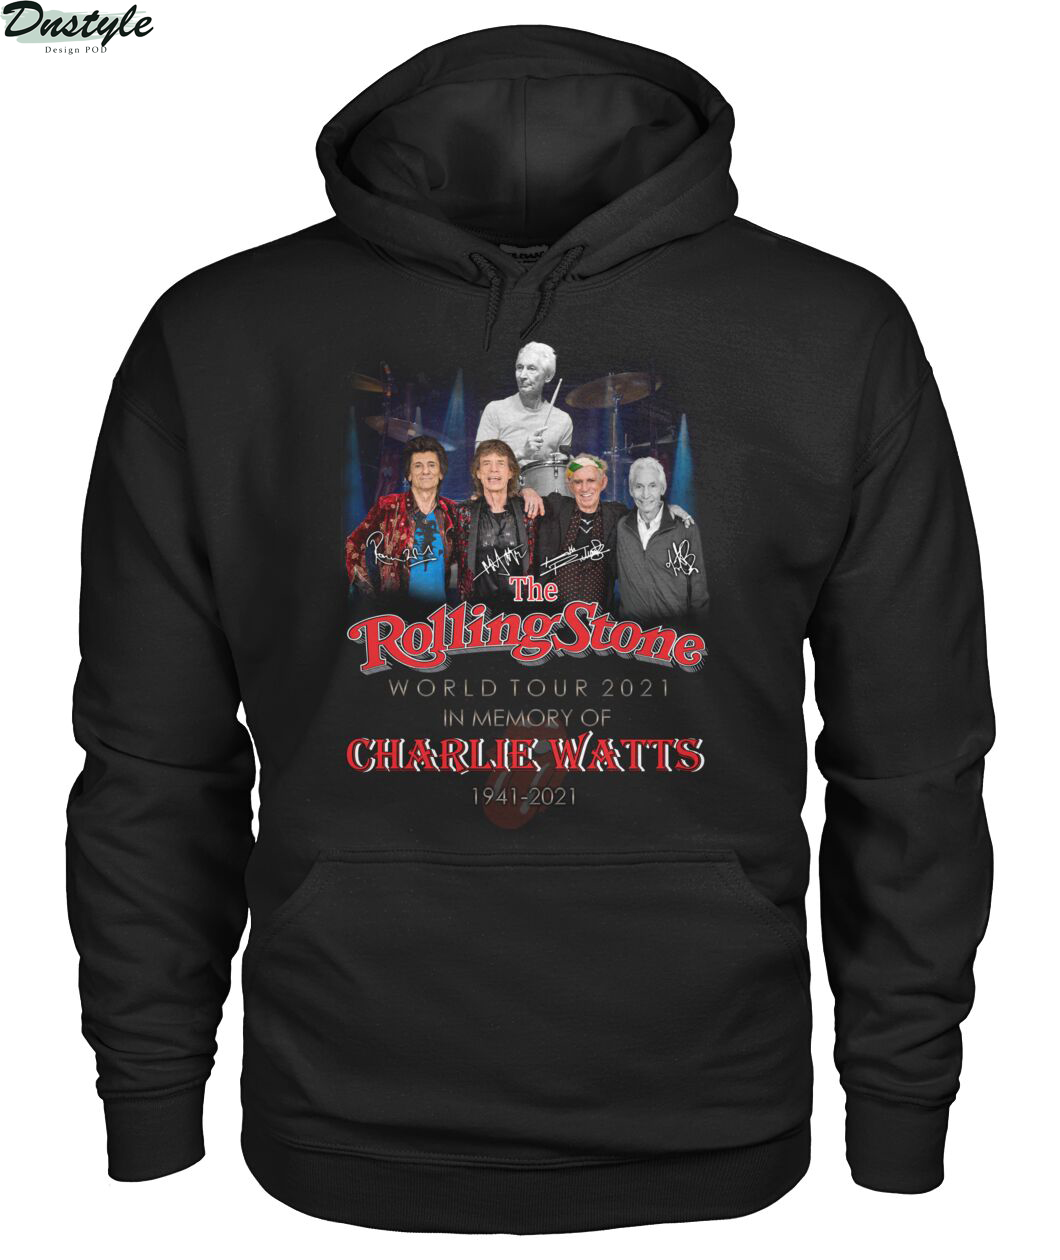 The rolling stone world tour 2021 in memory of Charlie Watts 1941-2021 hoodie